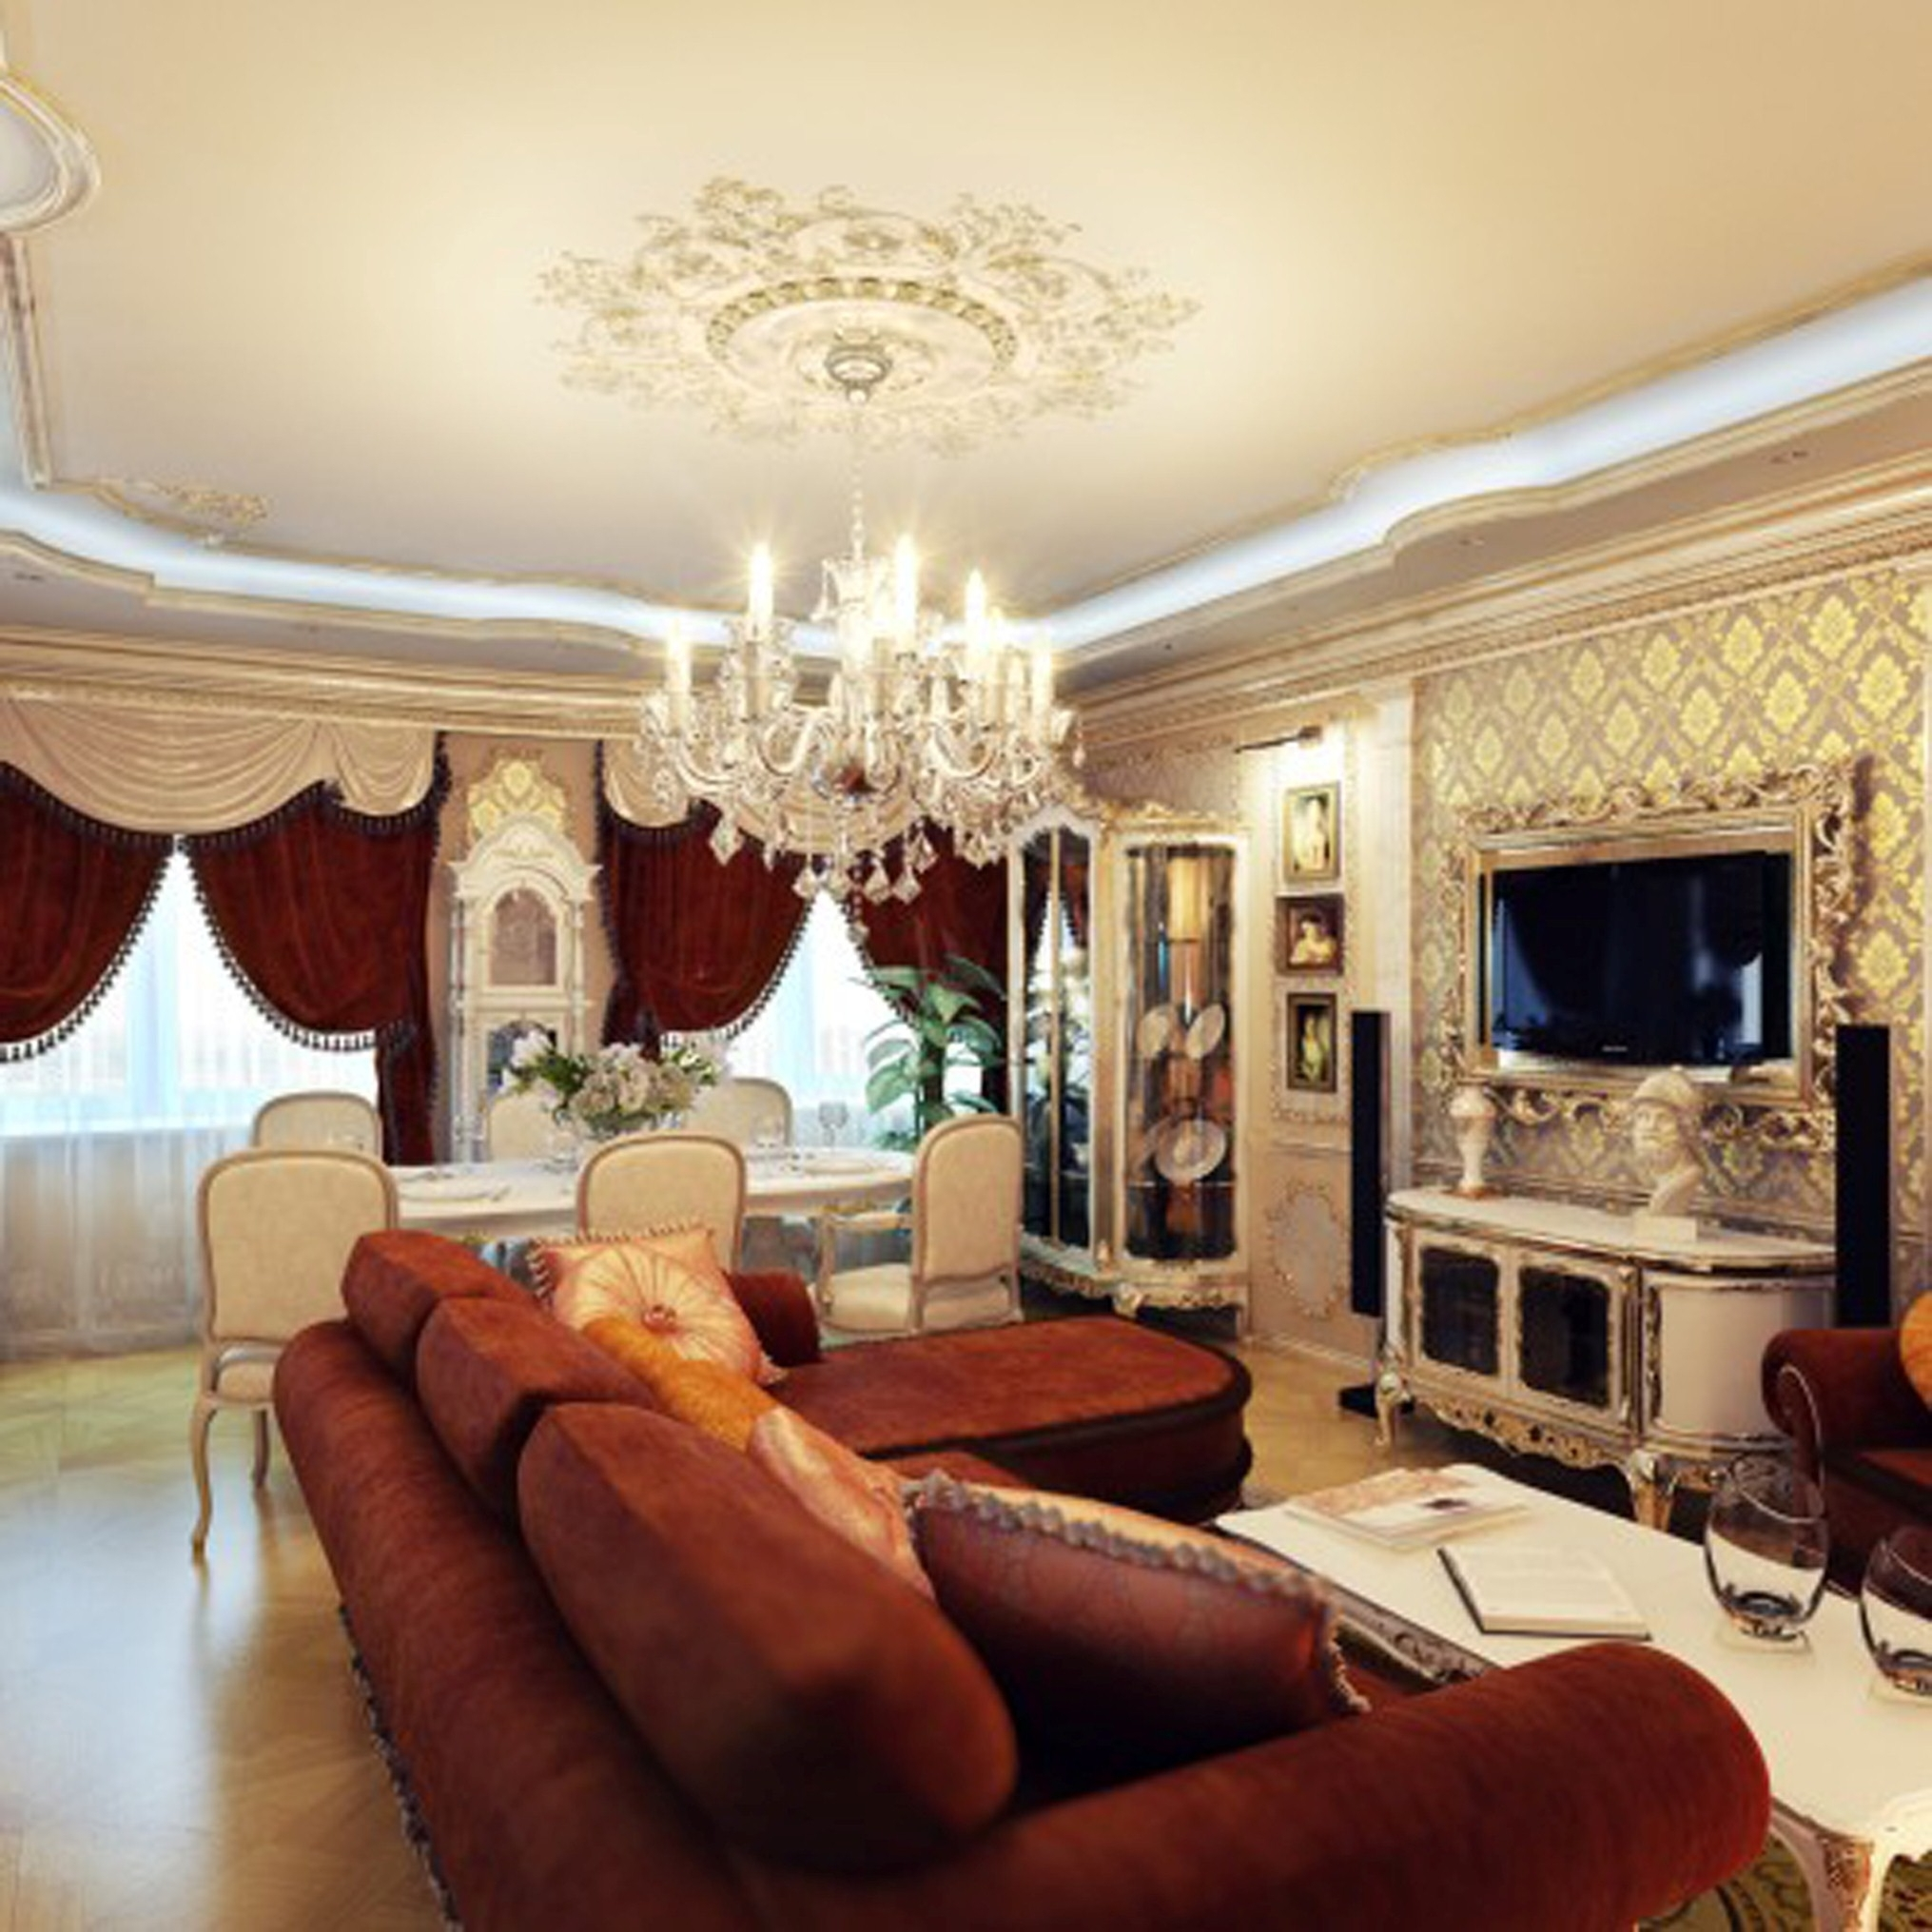 modern-living-room-royal-touch-design-with-alluring-red-fabric-sofa-also-stunning-wall-cream-theme-decorate